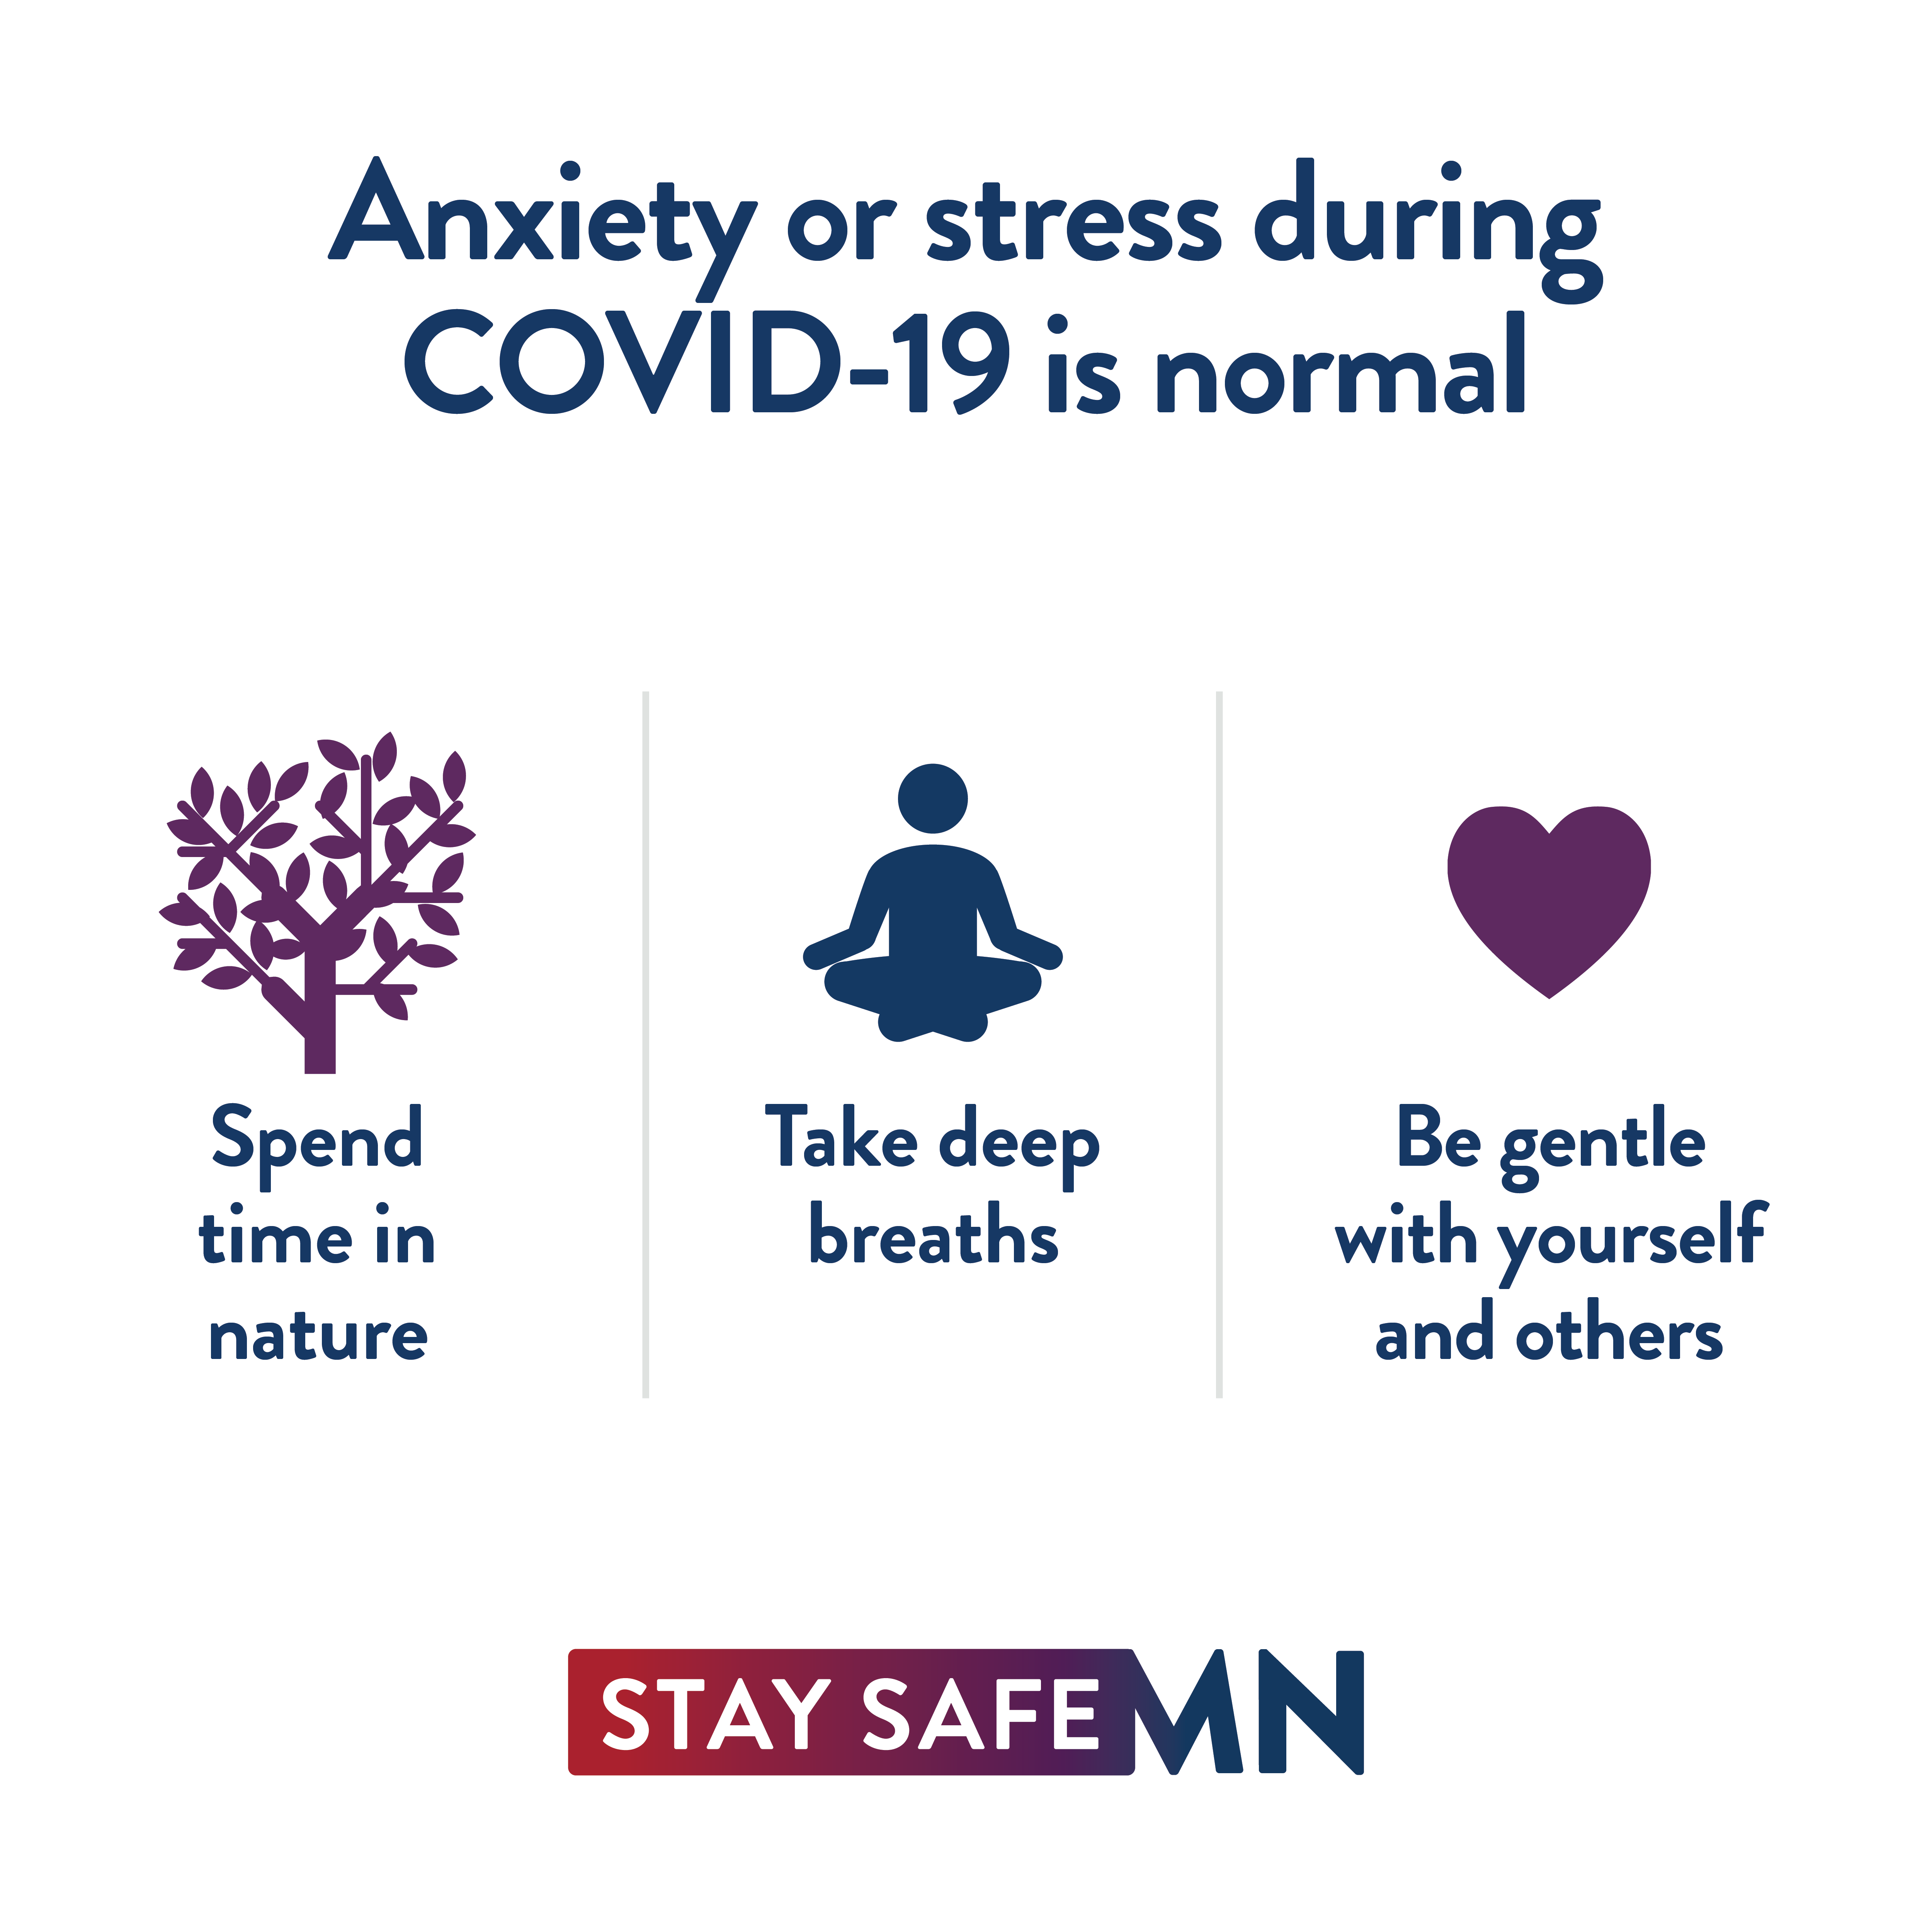 Anxiety or stress during COVID-19 is normal. Spend time in nature. Take deep breaths. Be gentle with yourself and others.